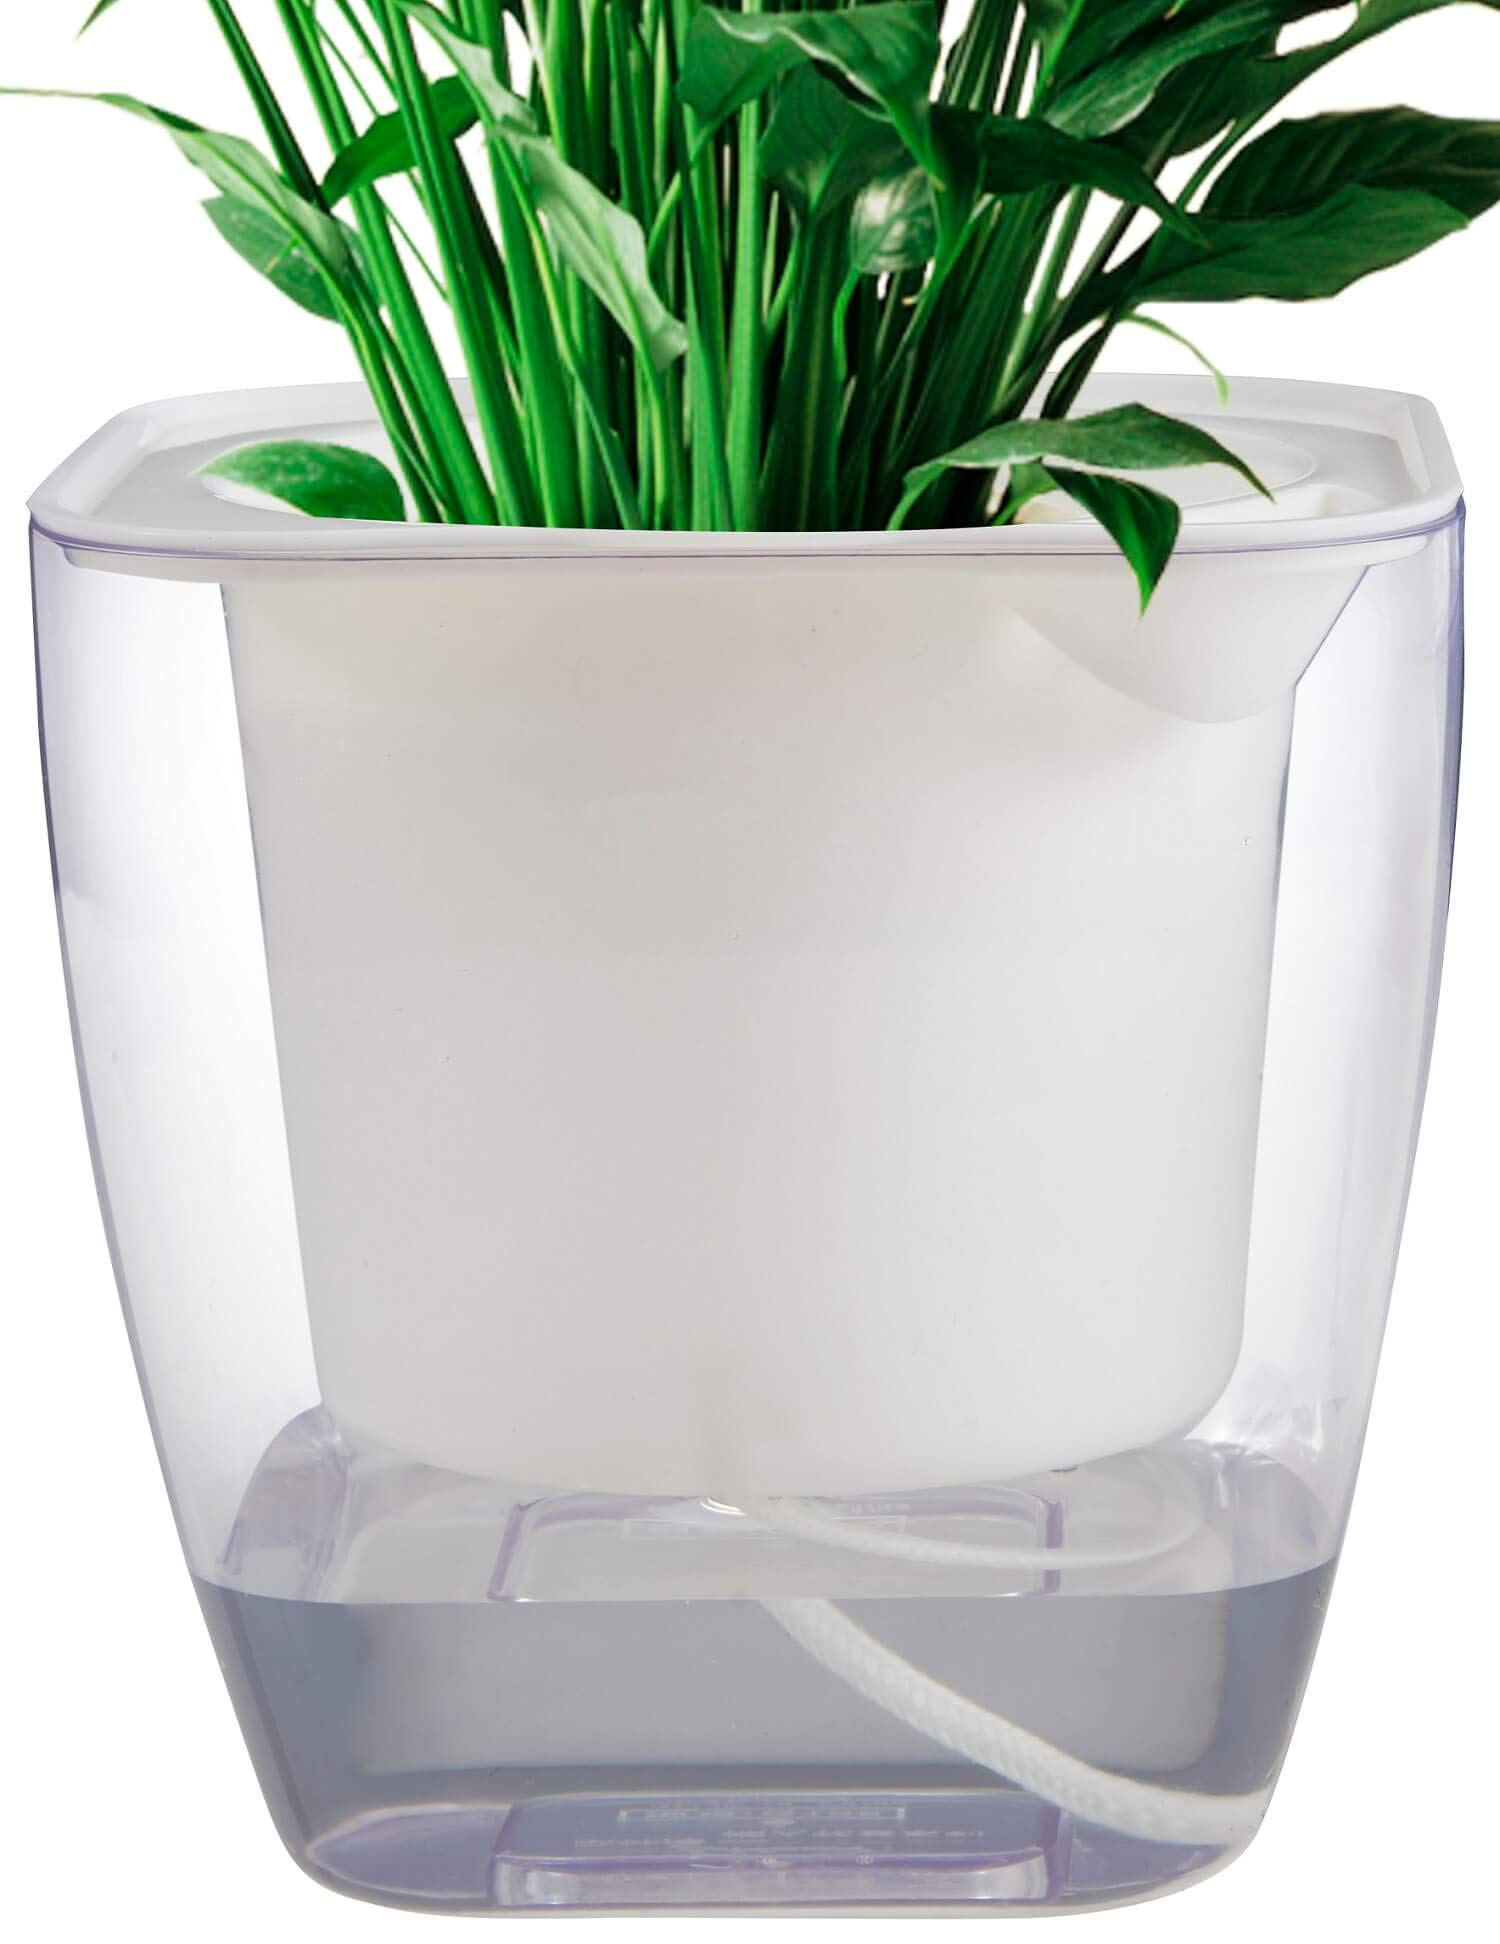 Flower pots indoor or Outdoor, Self Watering Planter 7'', Self Watering Pot (L)